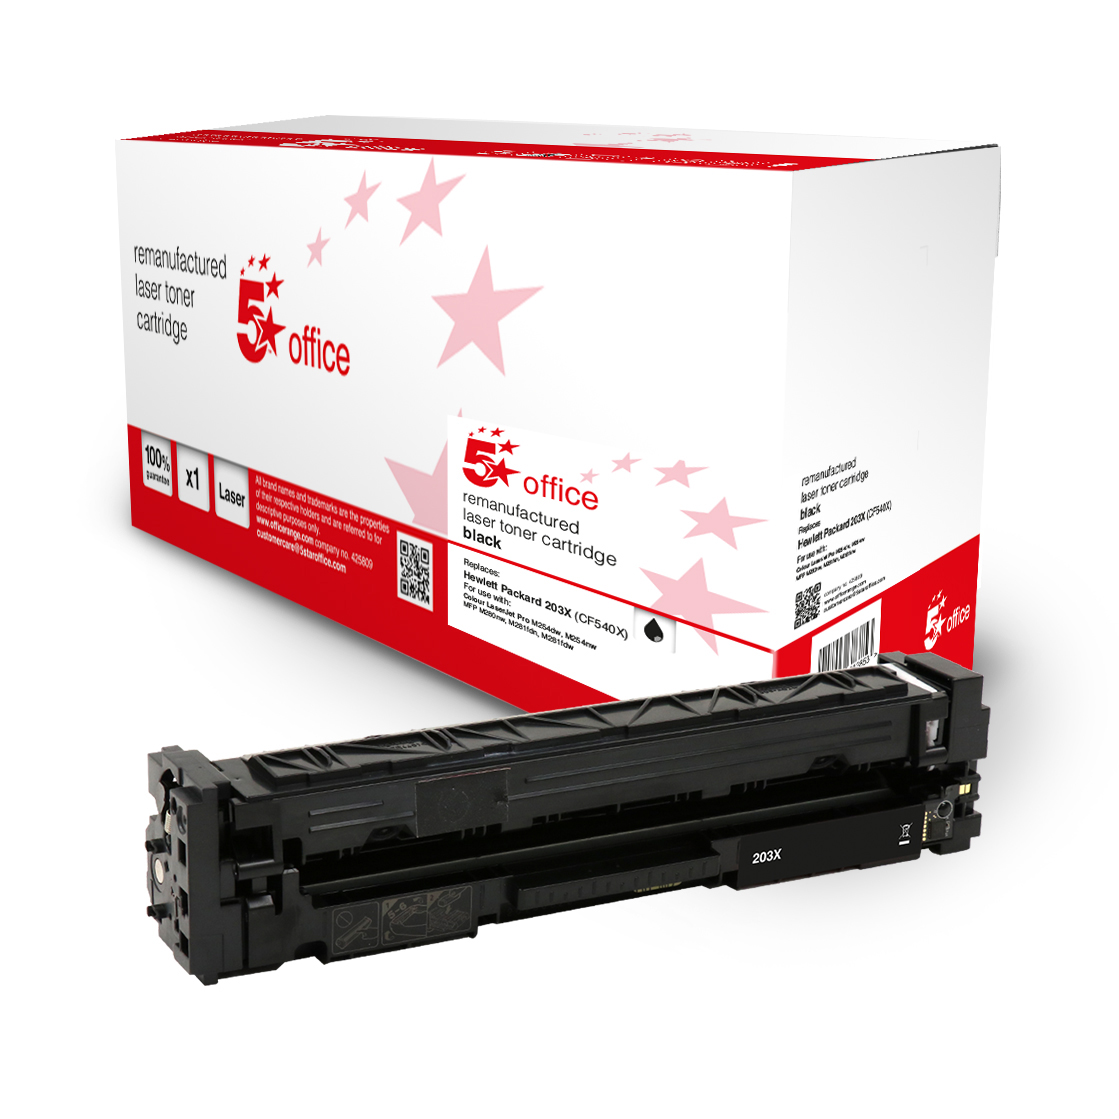 5 Star Office Remanufactured Toner Cartridge Page Life Black 3200pp HP 203X CF540X Alternative